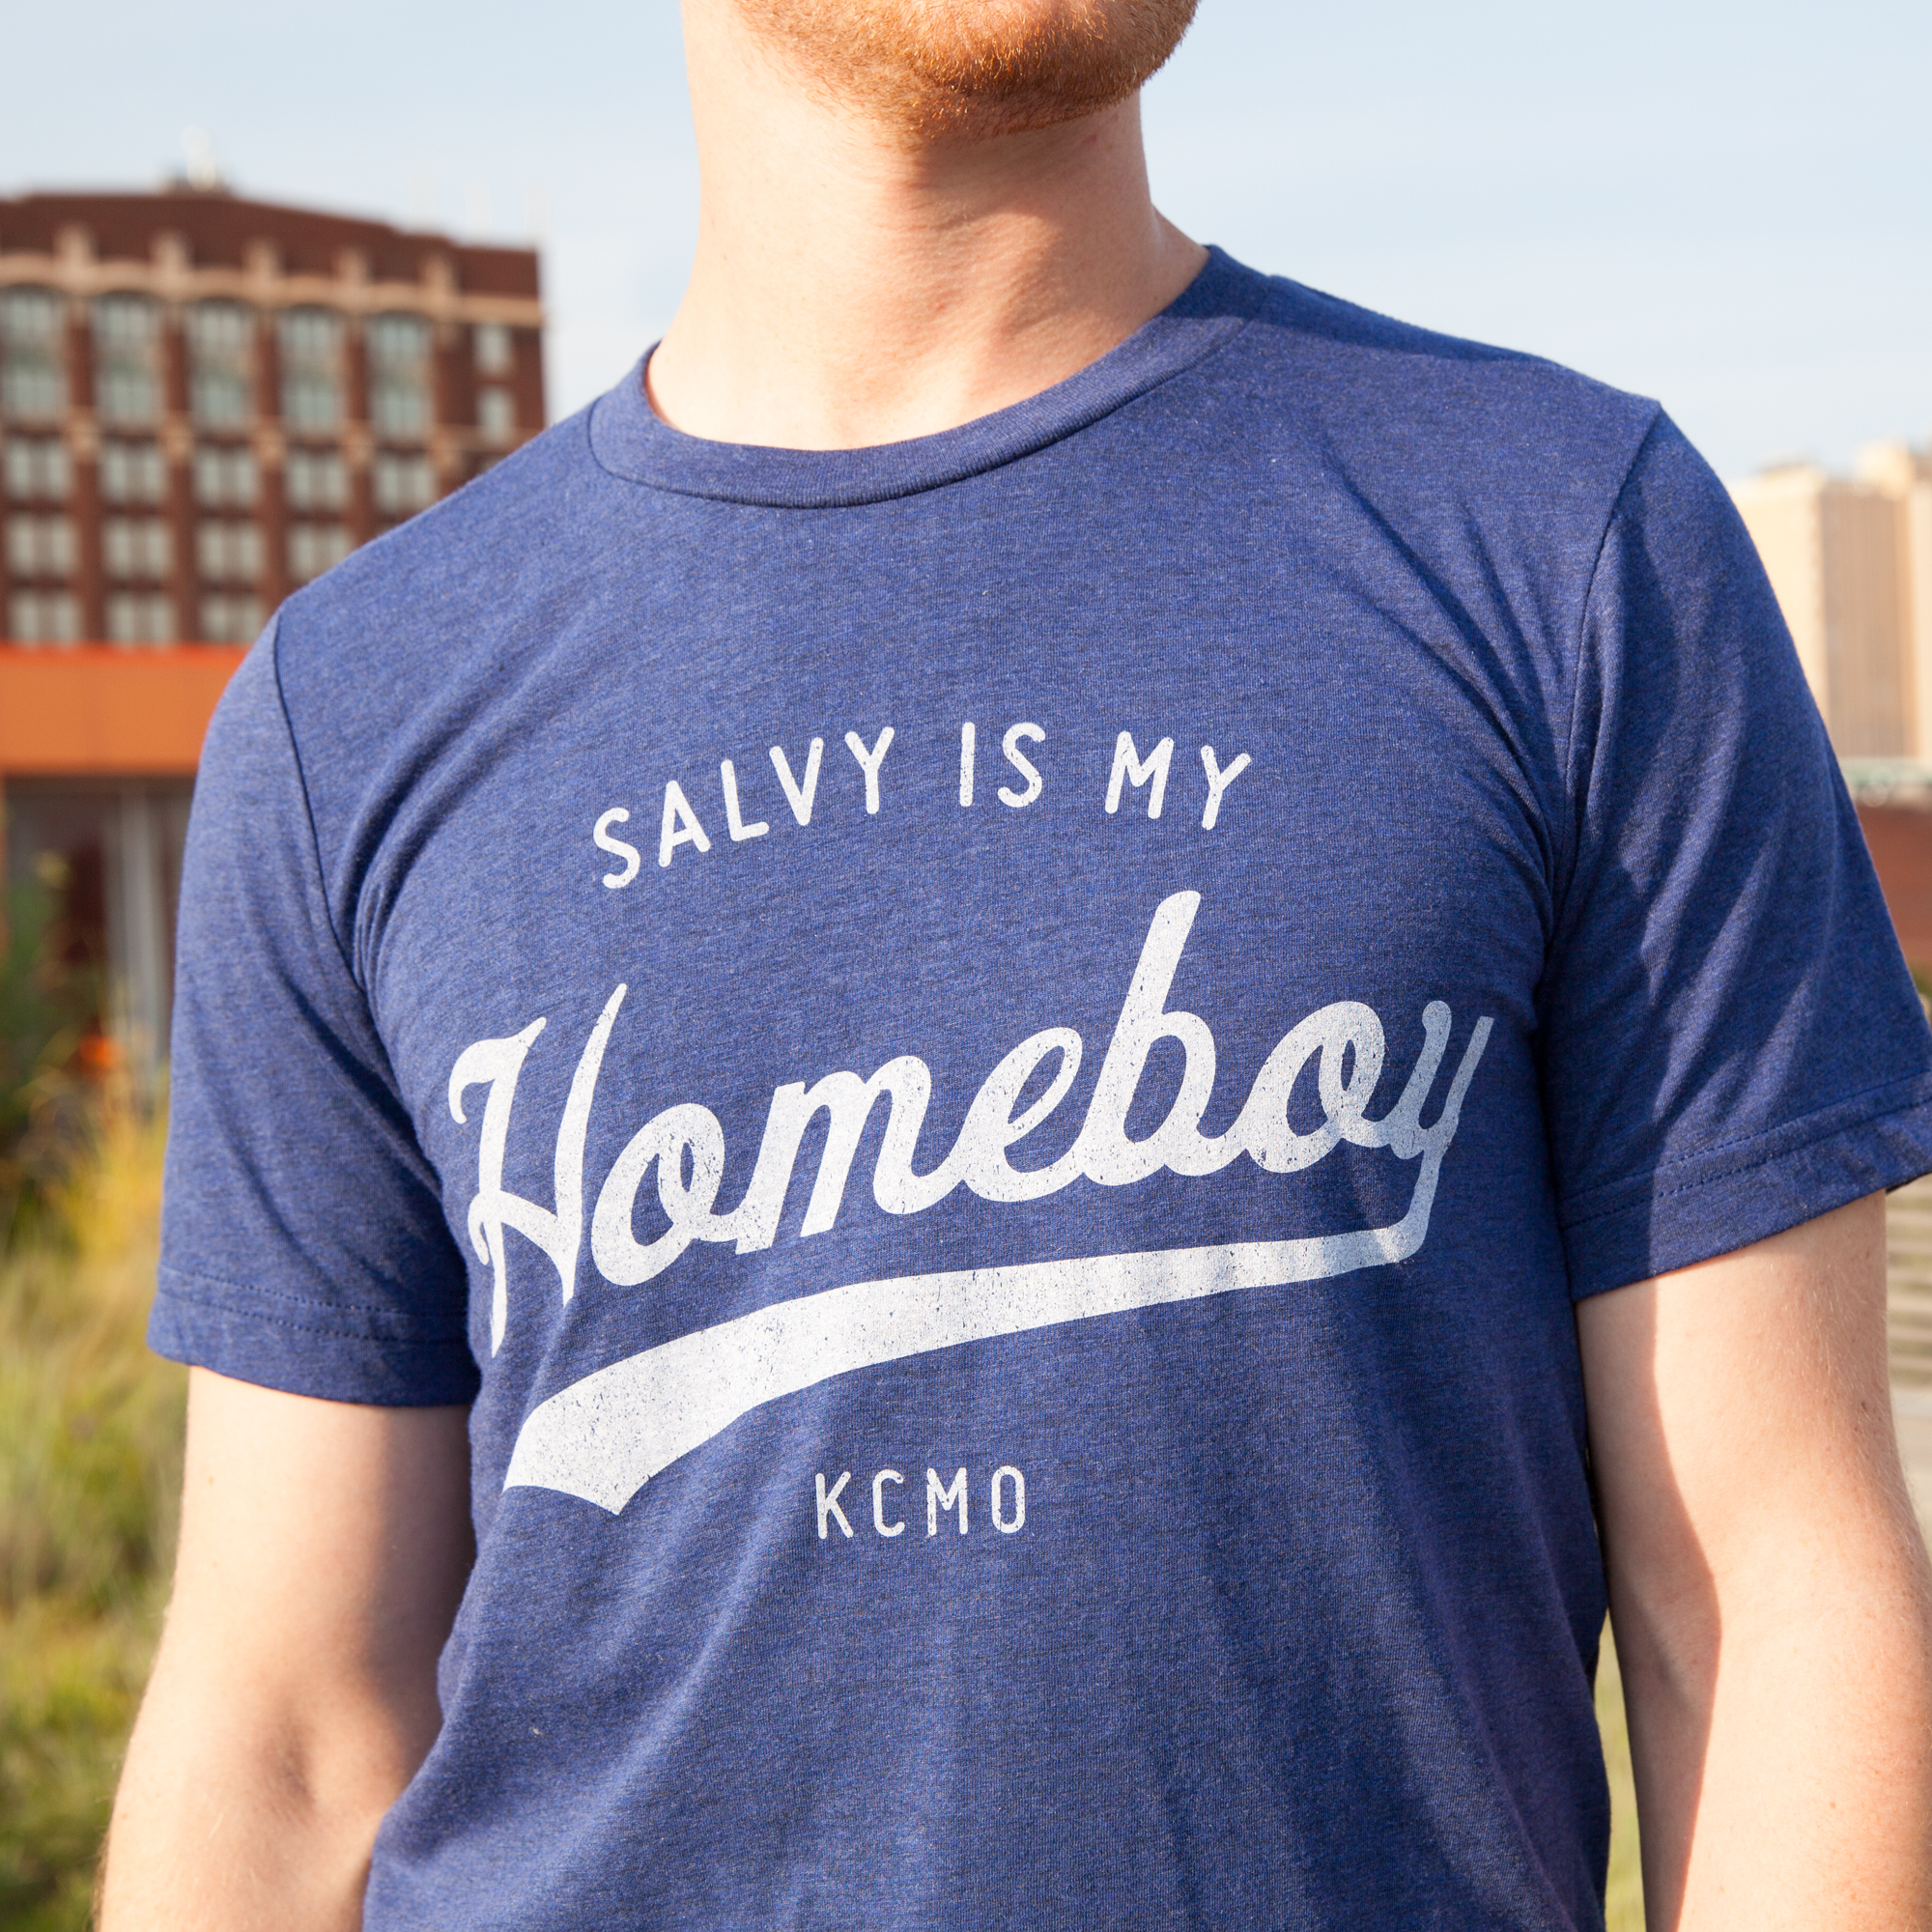 SALVY_SHIRTS_WEAR_2.jpg